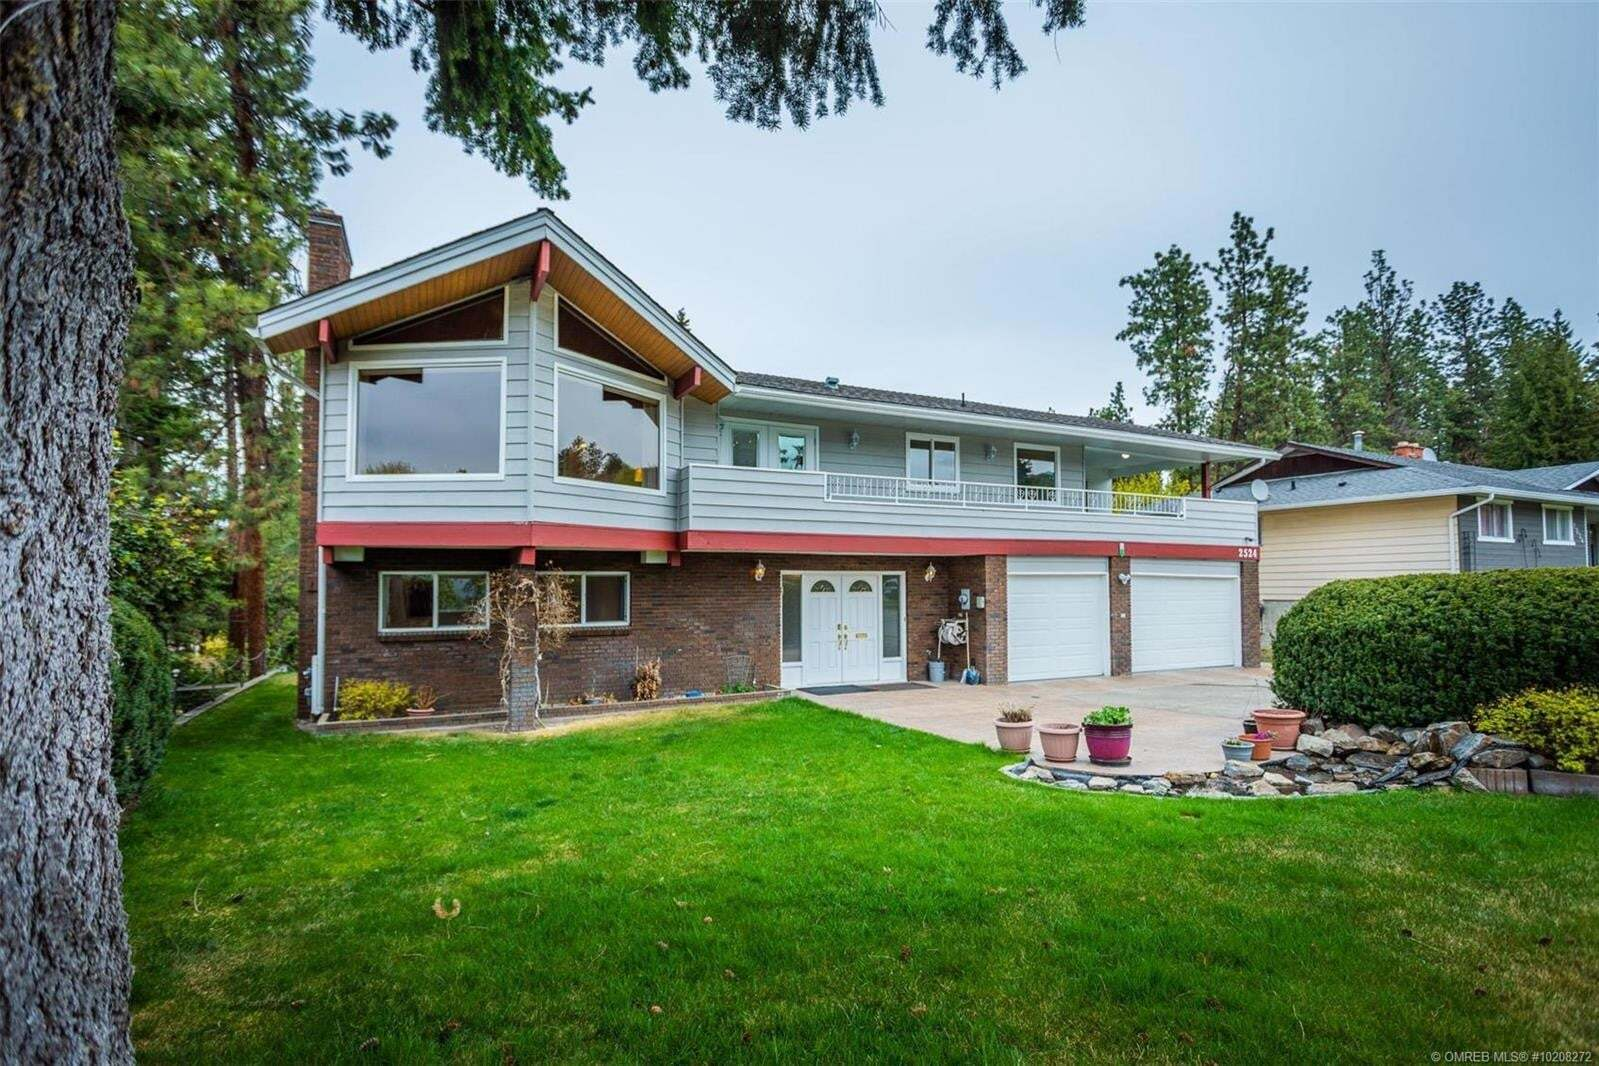 House for sale at 2524 O'reilly Rd Kelowna British Columbia - MLS: 10208272